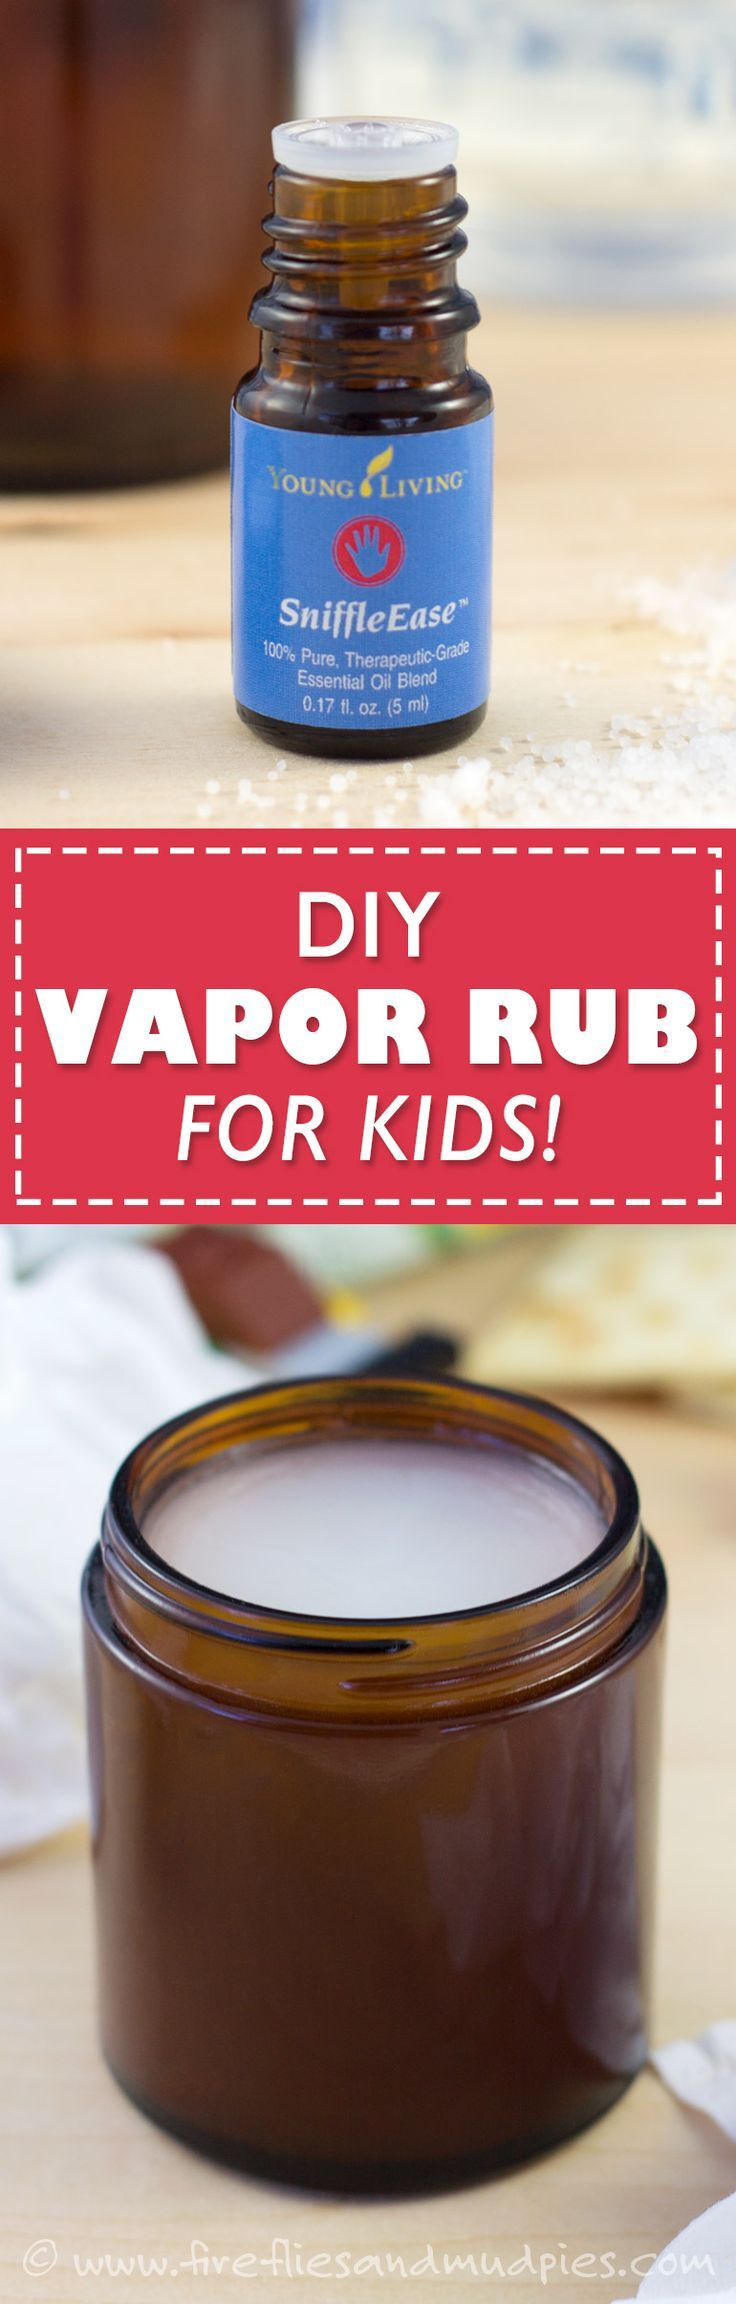 DIY Vapor Rub for Kids! Petroleum-free and easy to make! | Fireflies and Mud Pies